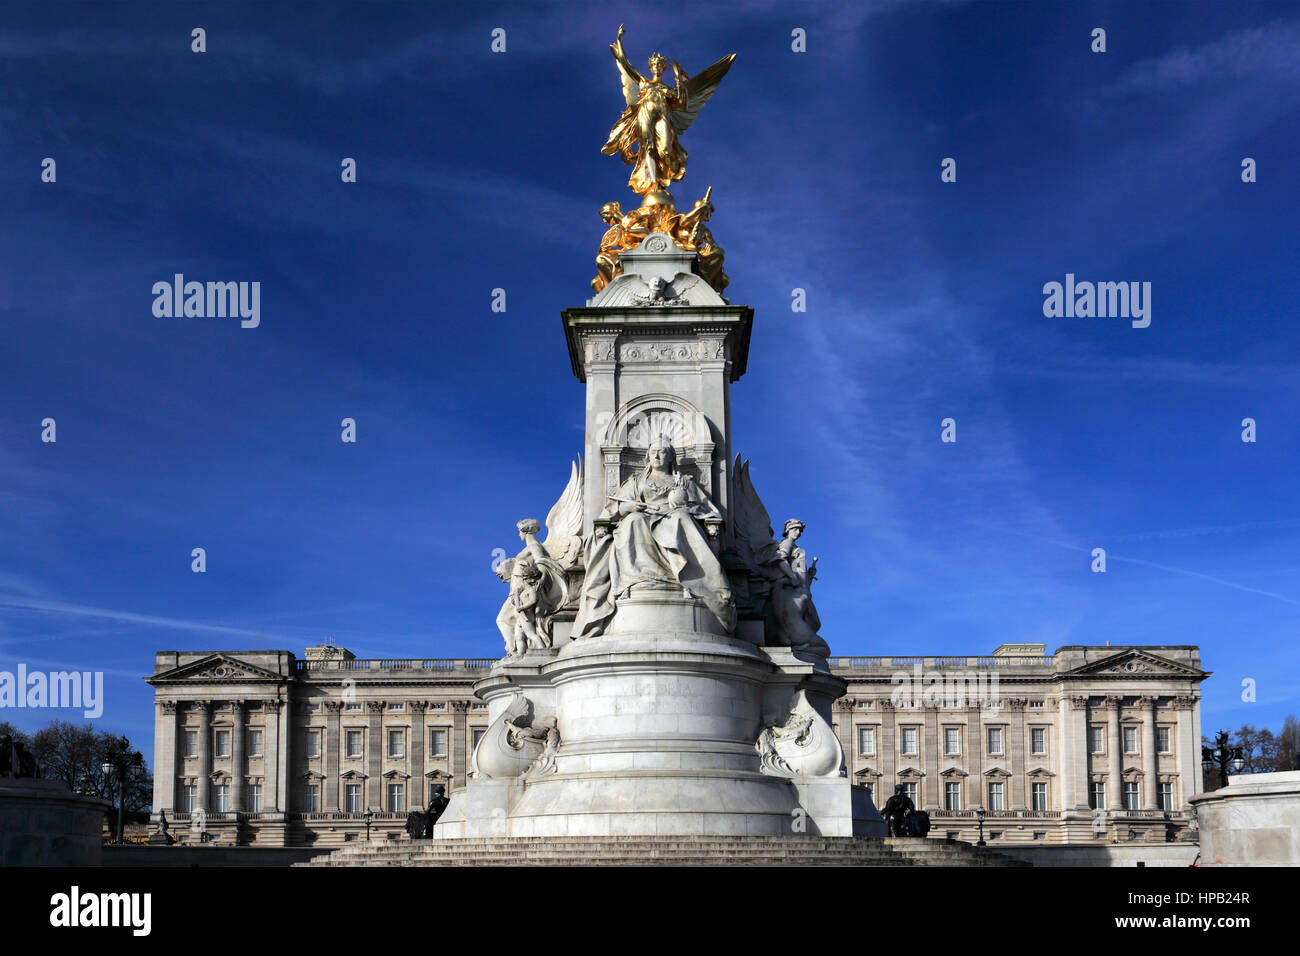 Summer view of the frontage of Buckingham Palace and Queen Victoria Monument, St James, London, England, UK - Stock Image